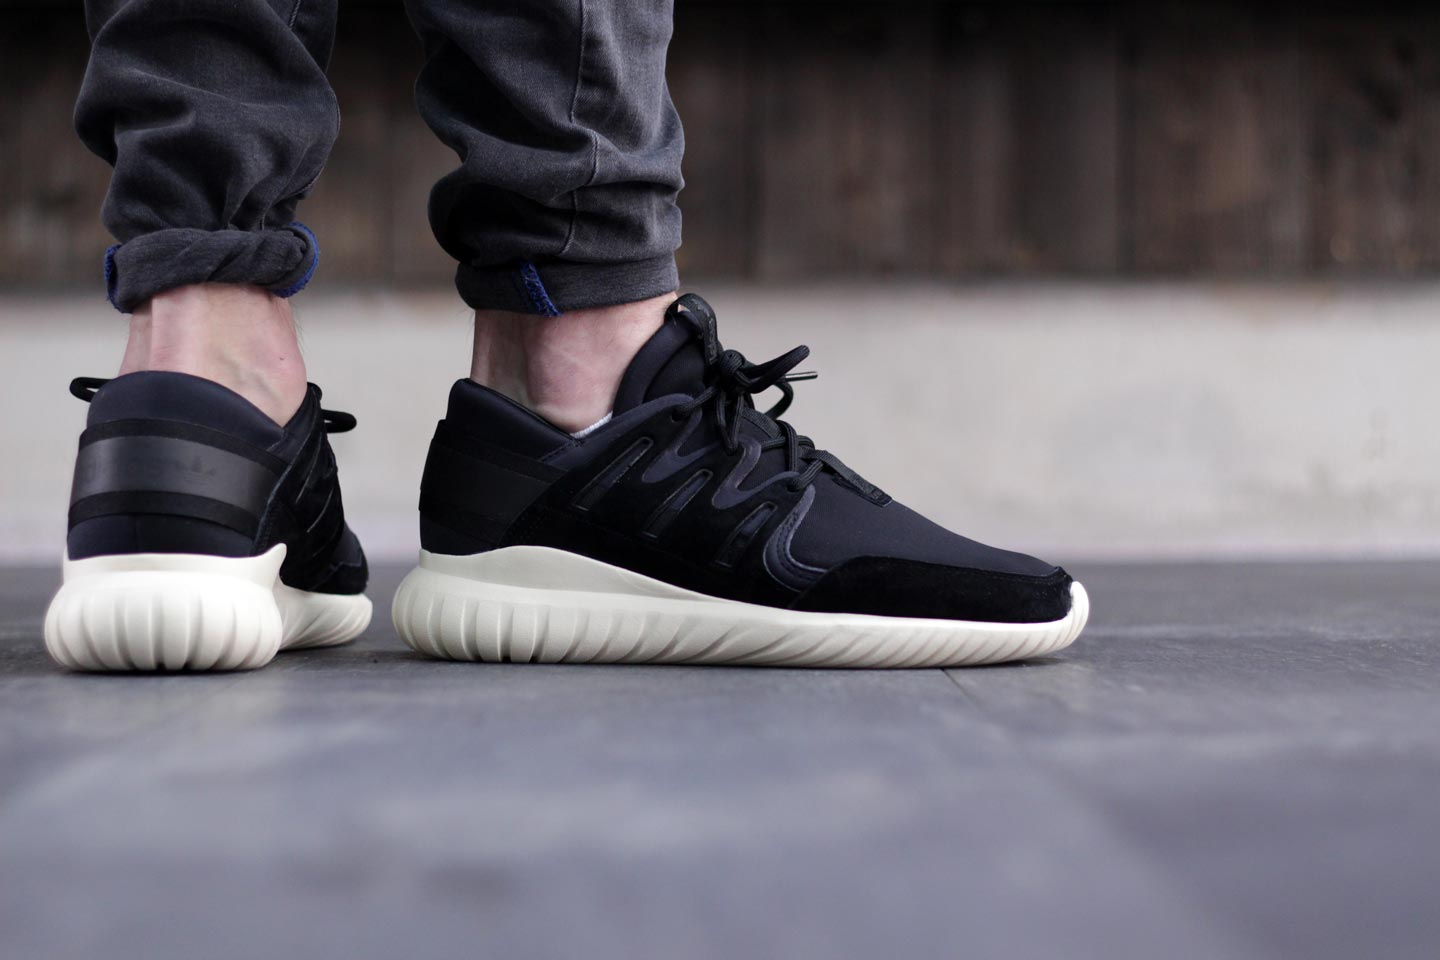 Review Adidas Tubular Nova PK Blackout